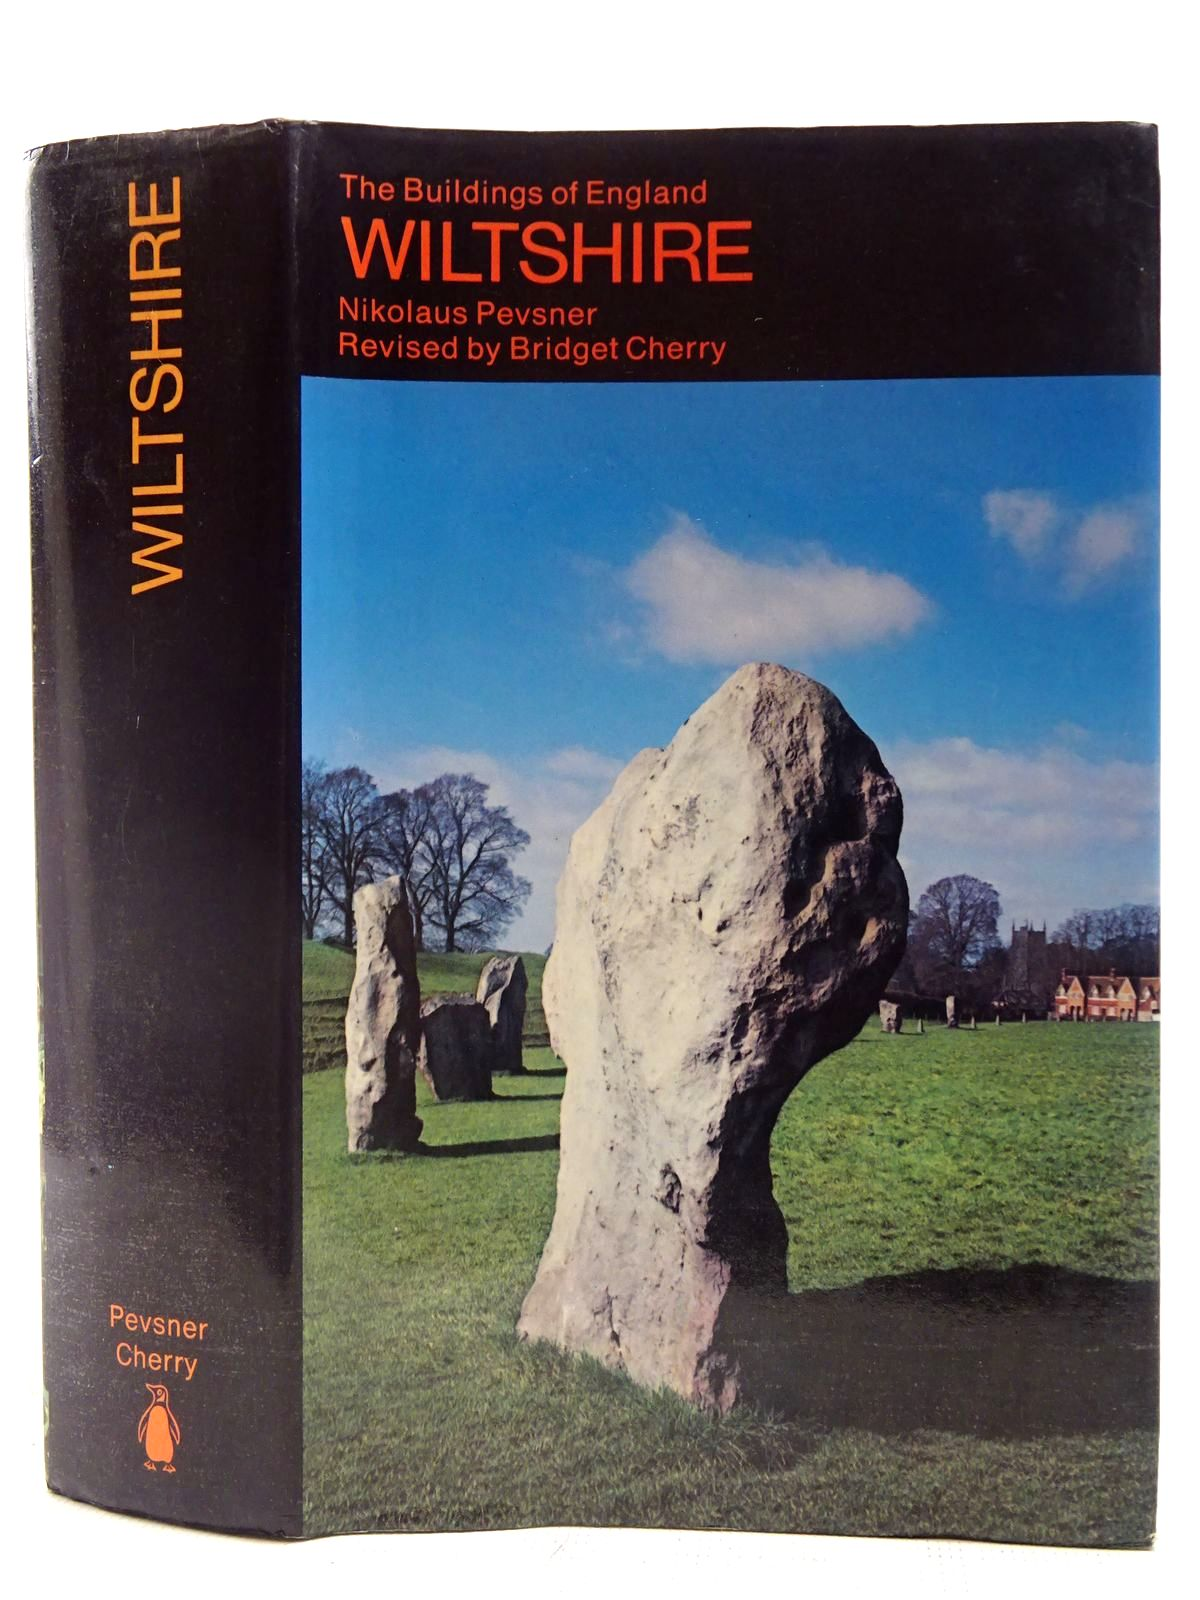 Photo of WILTSHIRE (BUILDINGS OF ENGLAND)- Stock Number: 2127669